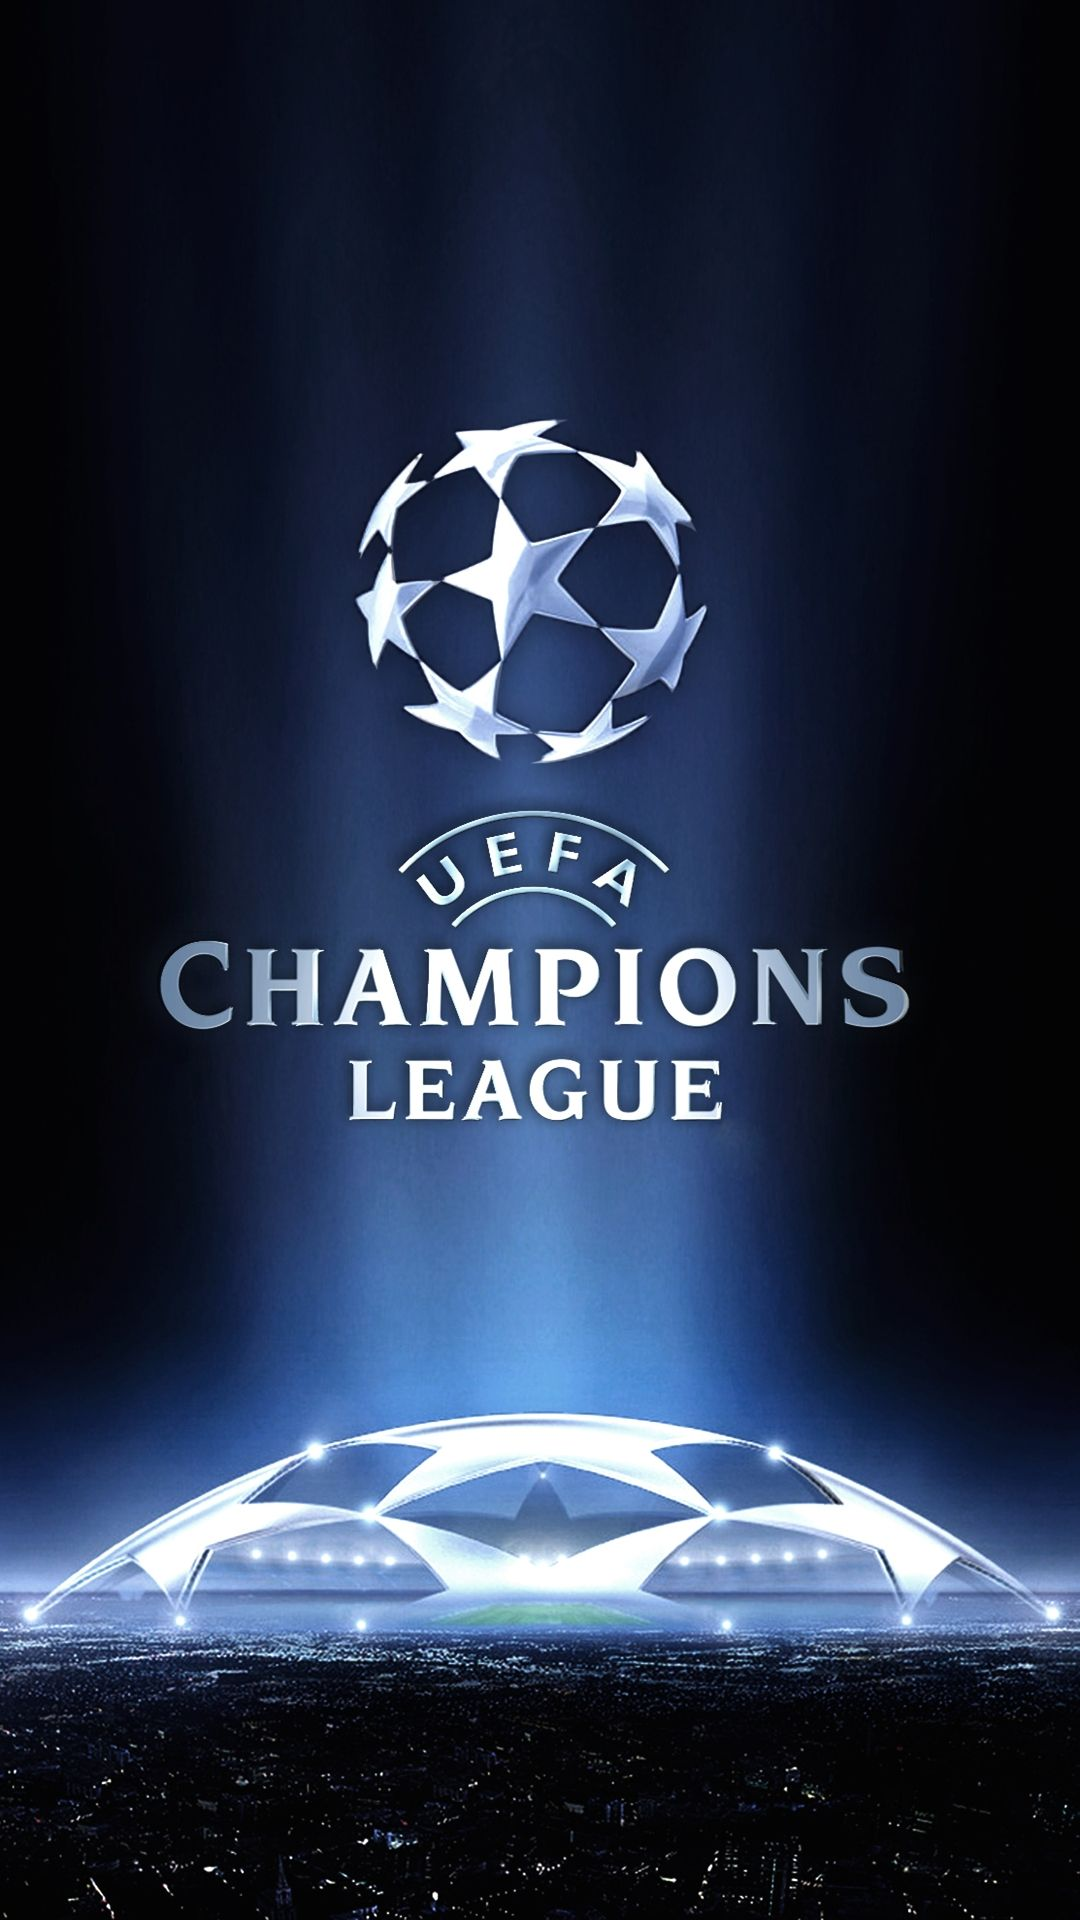 tap and get the free app sport uefa champions league logo navy blue european football soccer shining stadi futebol europeu fotos de futebol champions league pinterest